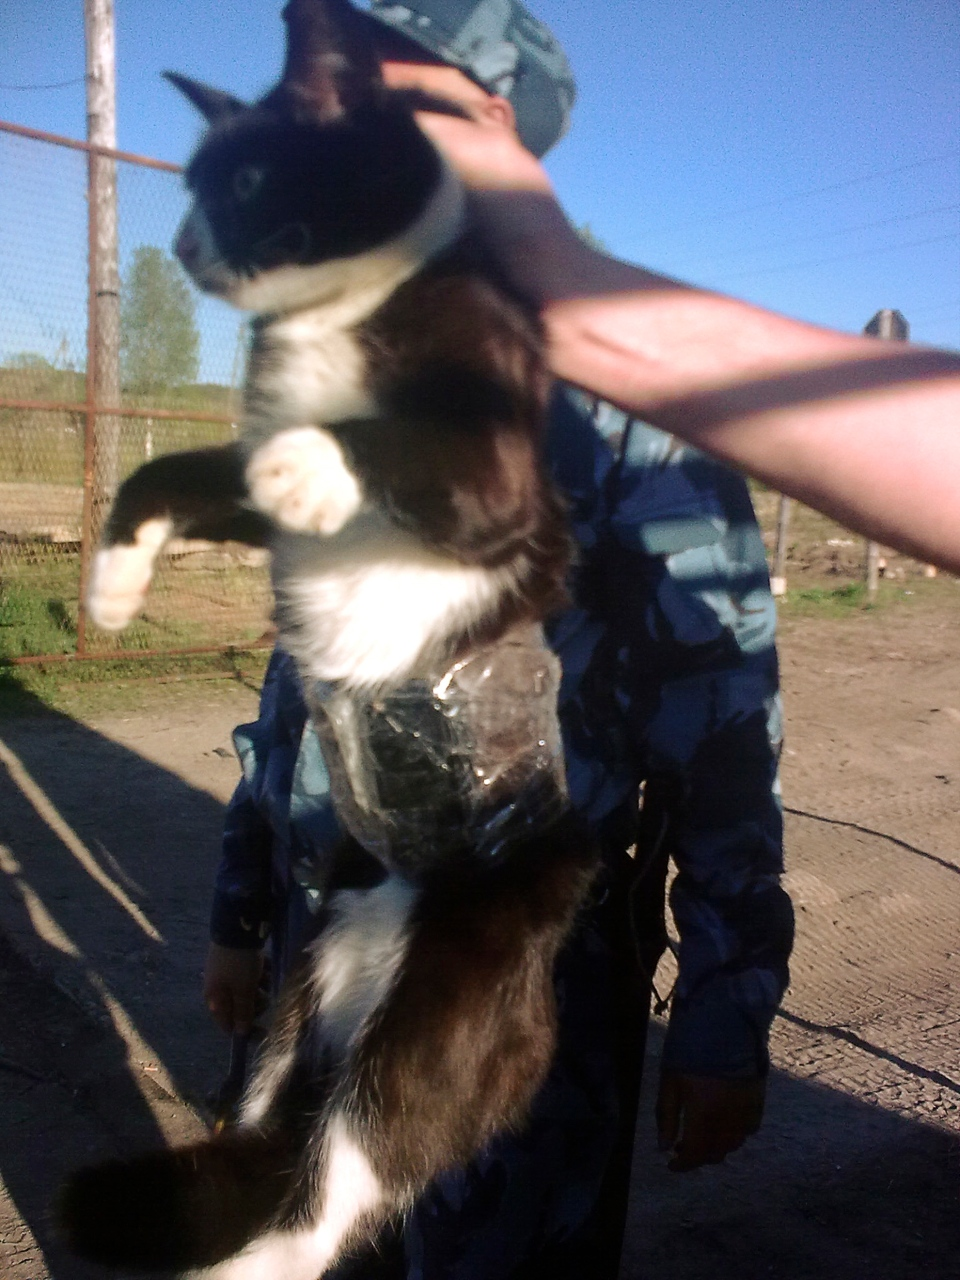 Guards patrolling a prison colony in Russia's north saw a cat on the fence and it seemed to be carrying something. On a closer look, they found a few cellphones and chargers taped to the cat's belly. (AP Photo/Press service of the Russian Federal Penitentiary Service for the Republic of Komi)